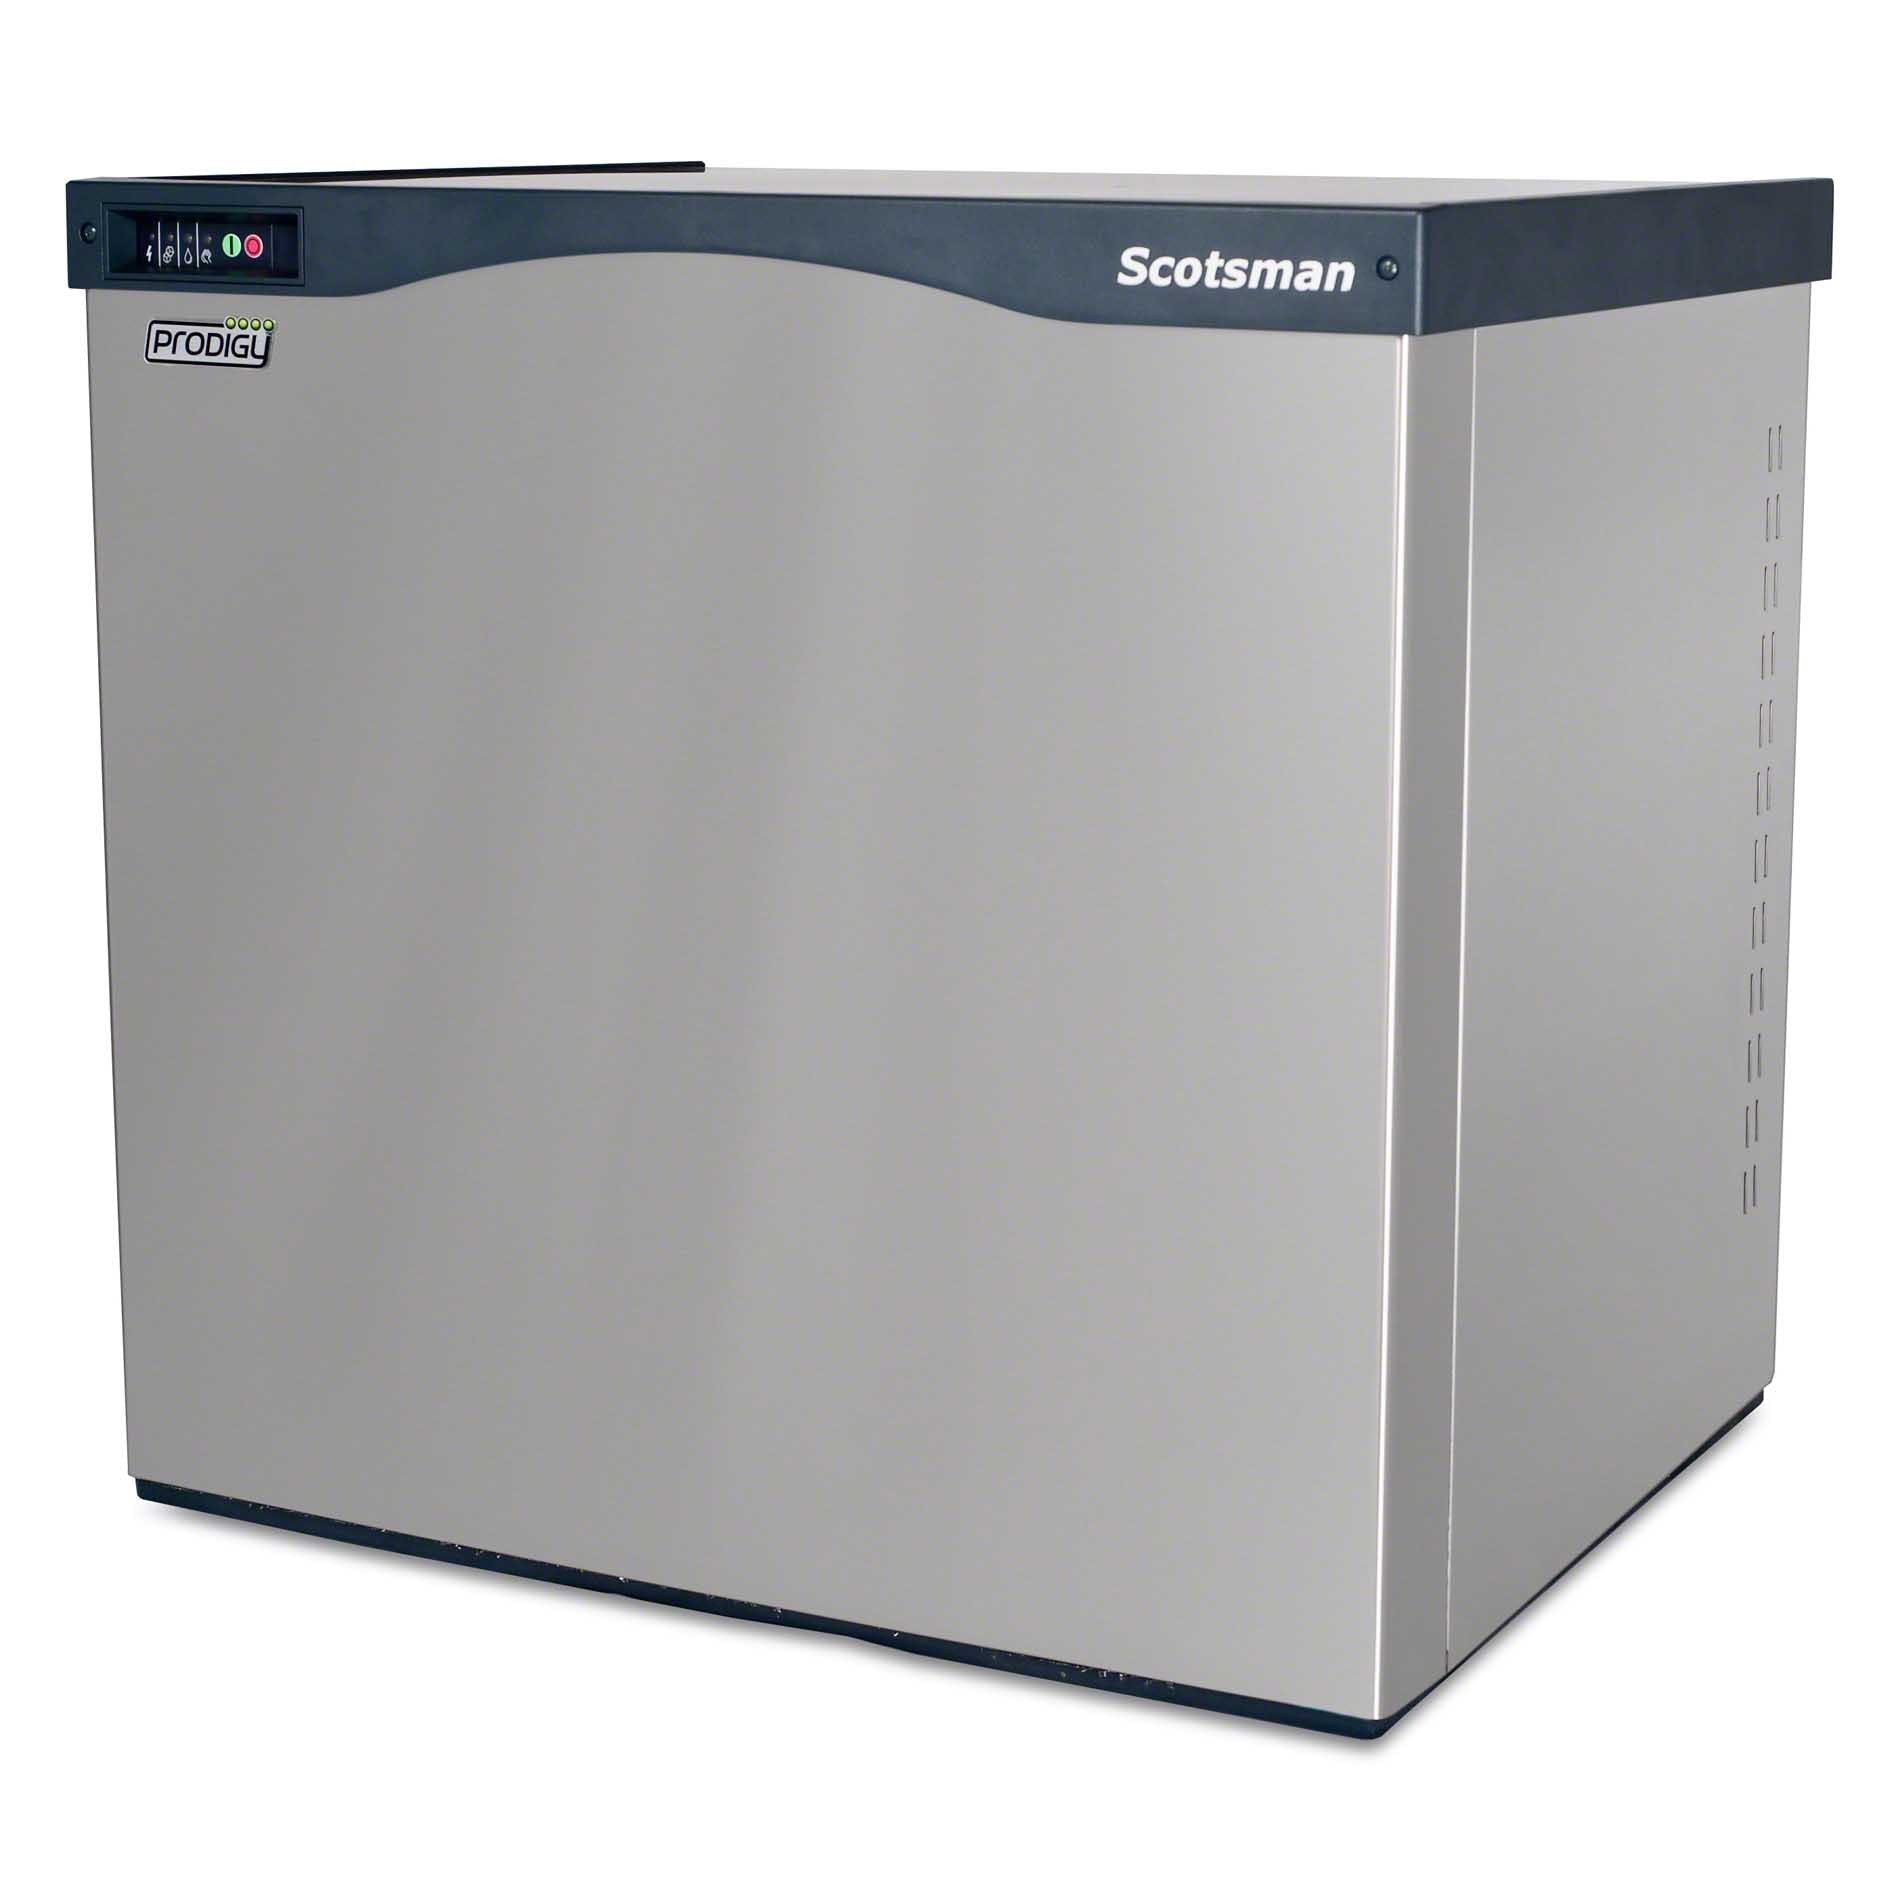 Scotsman - C1030SR-32A 996 lb Half Size Cube Ice Machine - Prodigy Series - sold by Food Service Warehouse